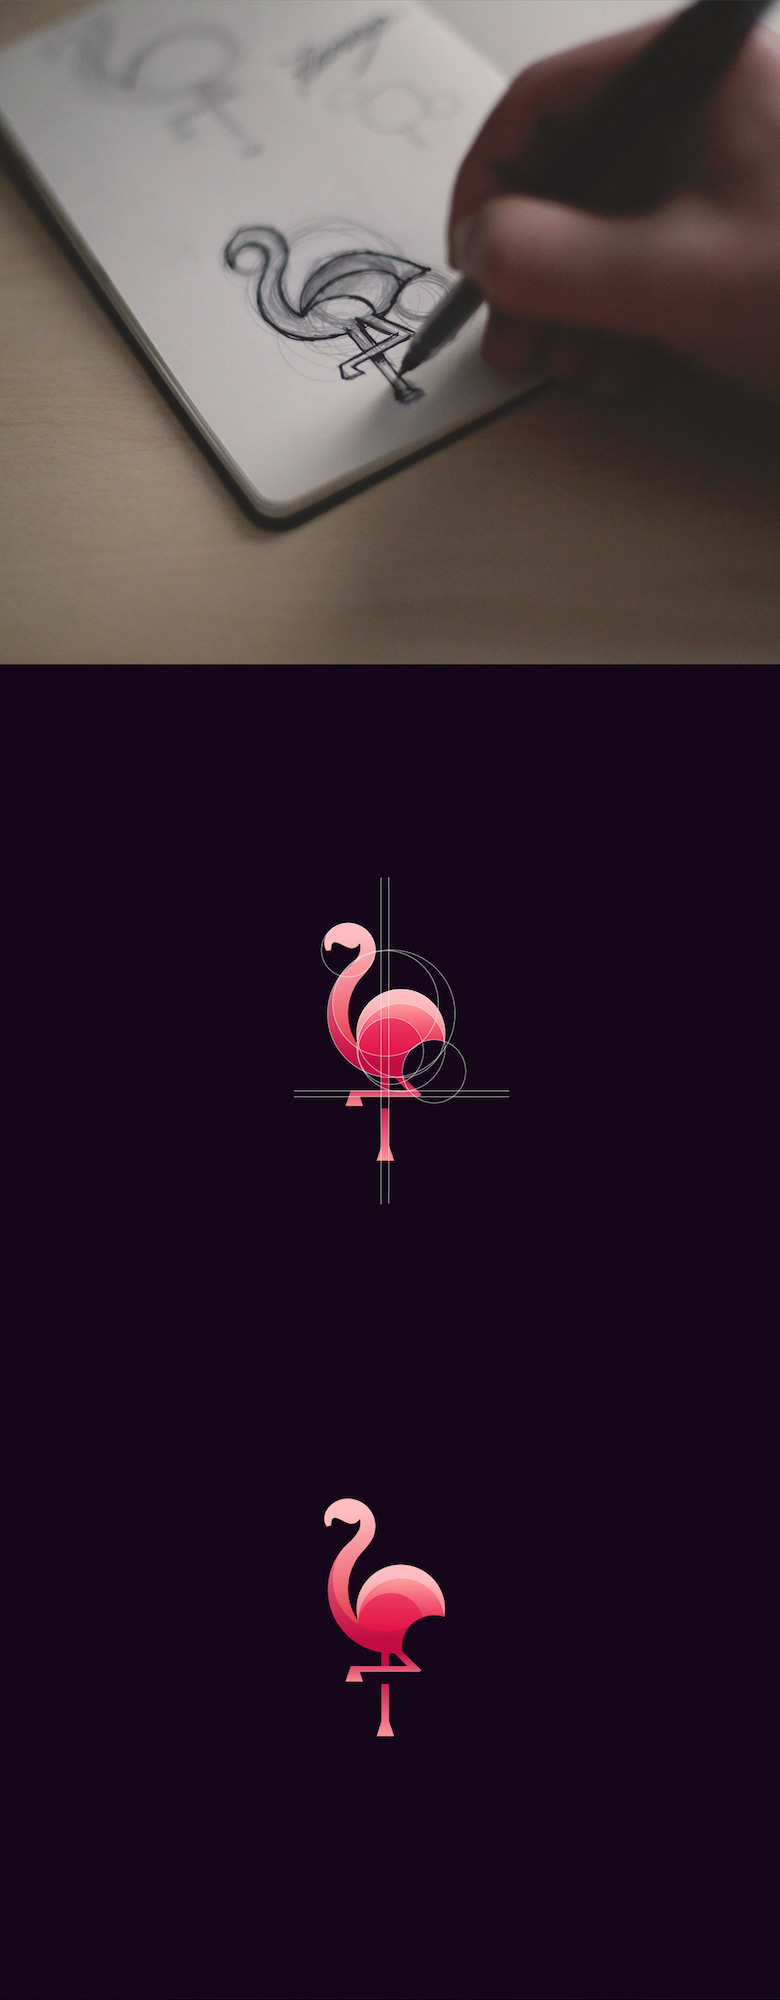 colourful-animaux-logos-or-ratio-5